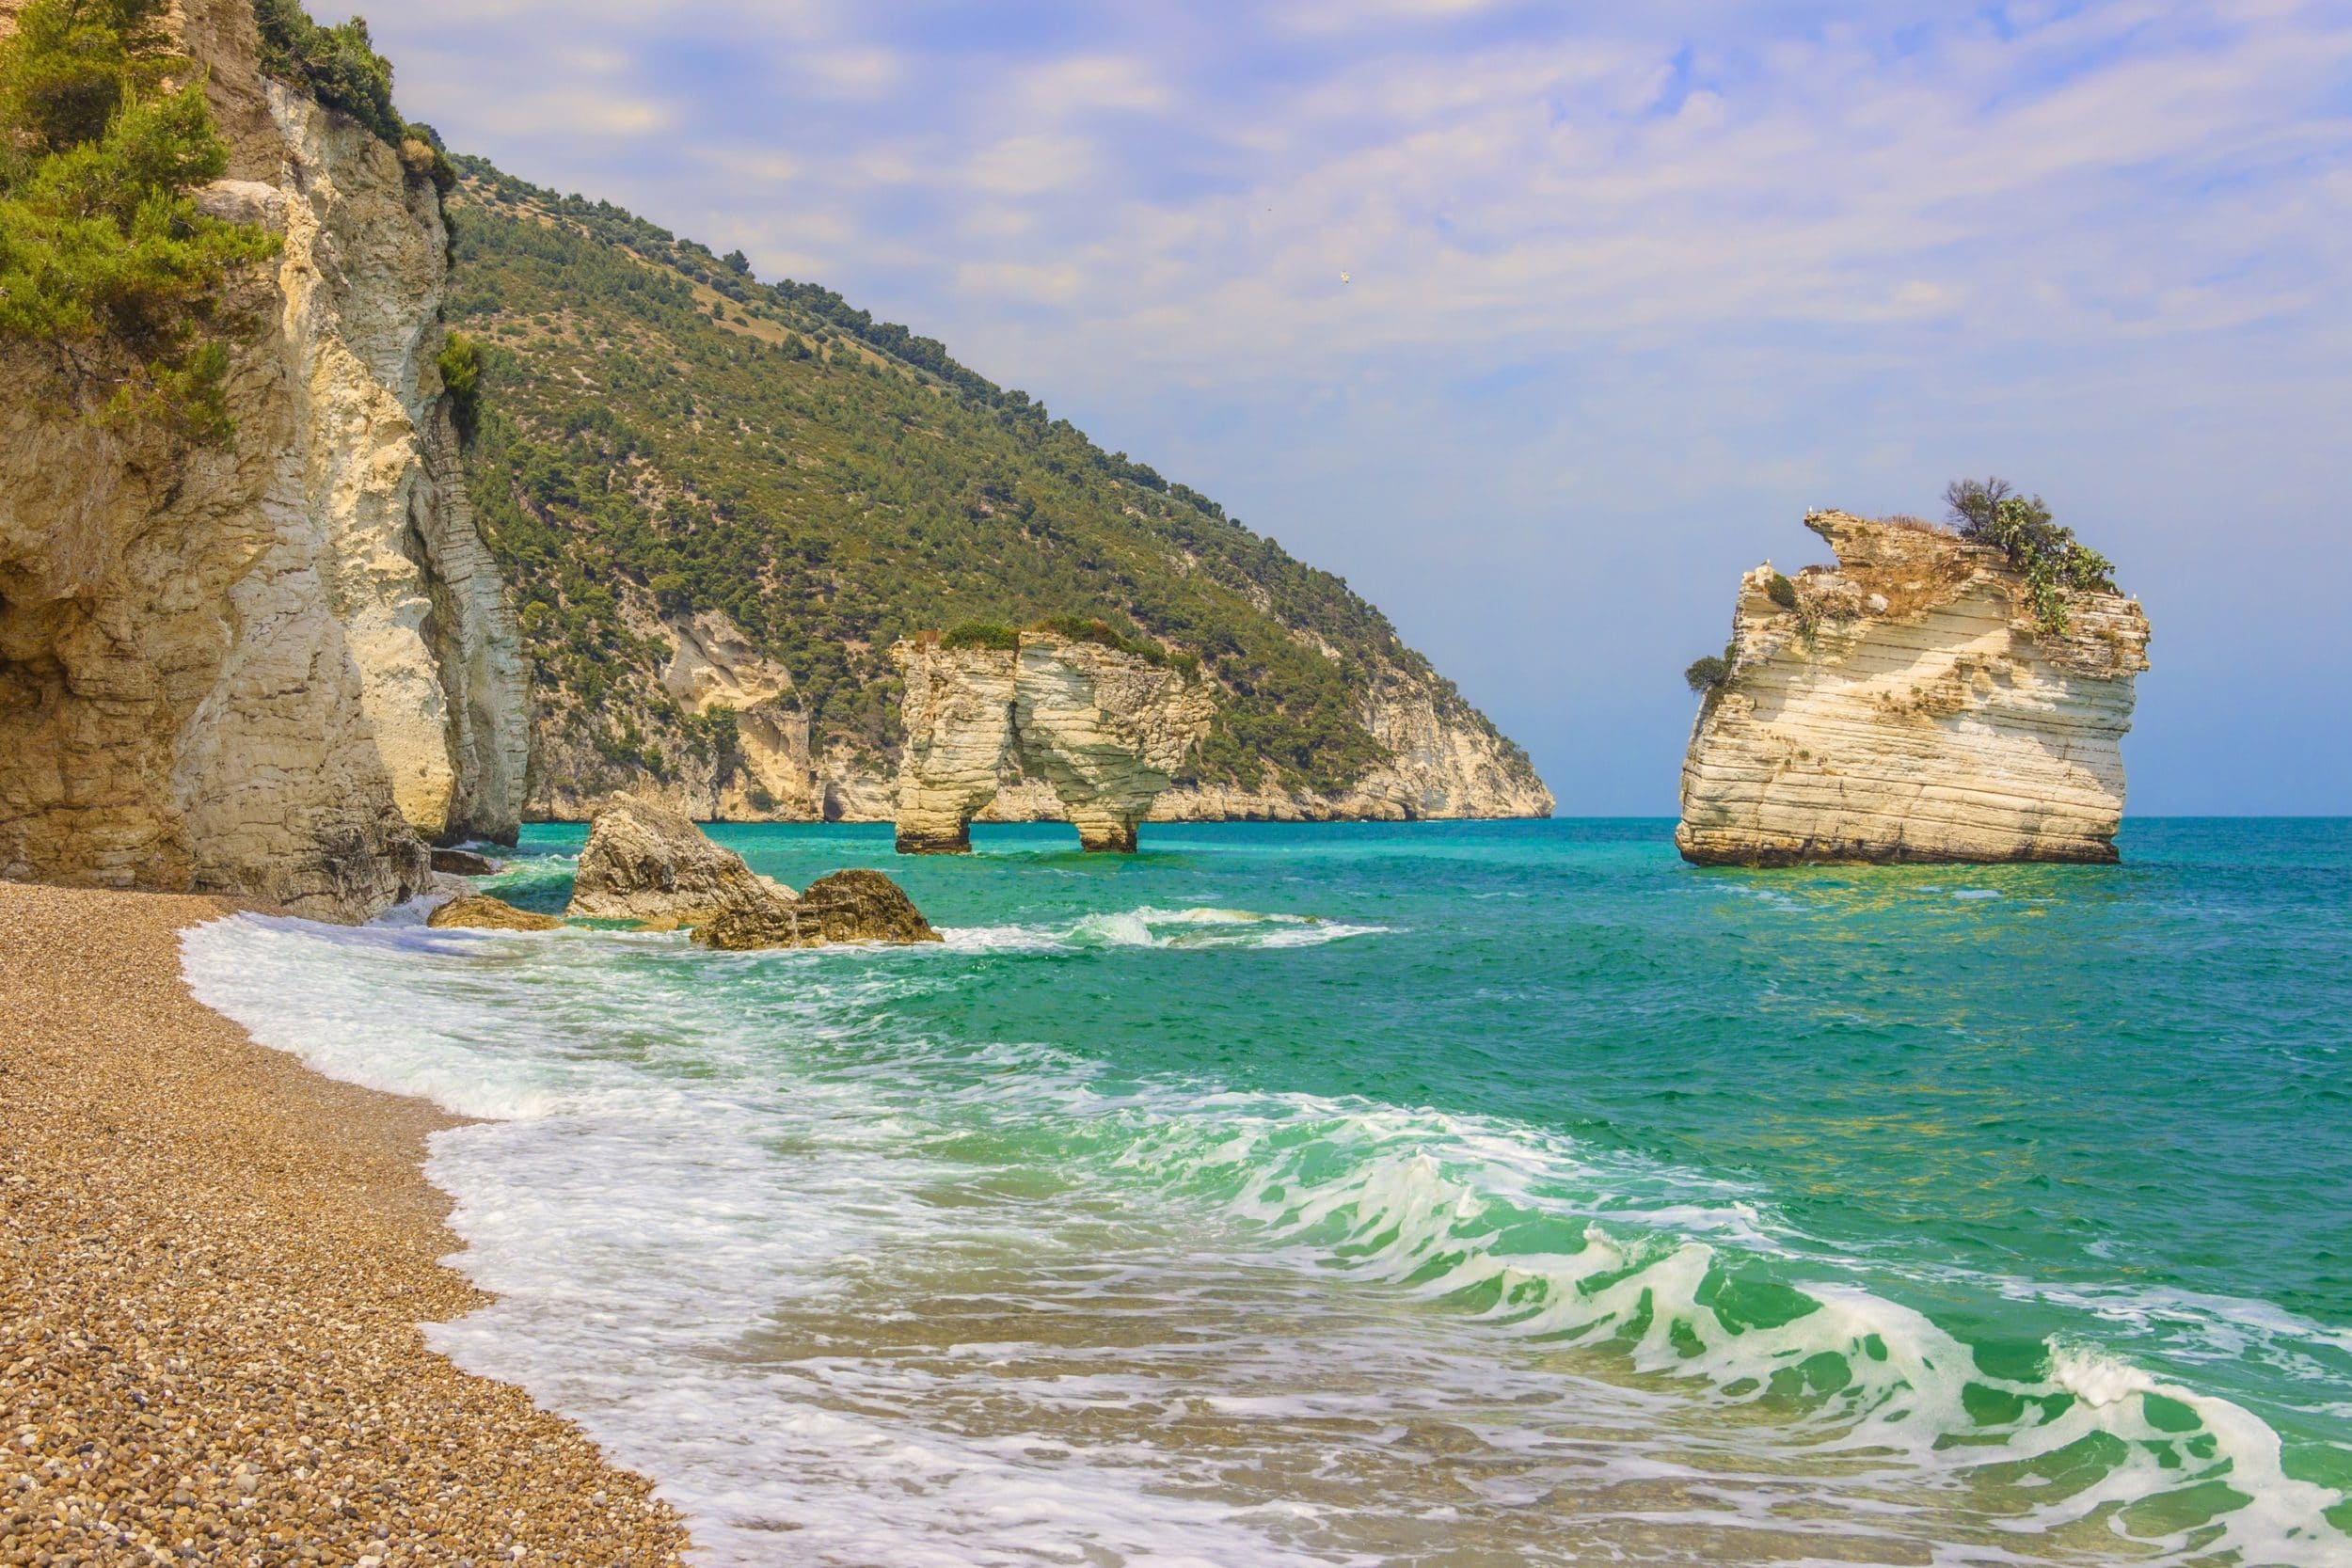 Breathtaking views from the beaches of Puglia, Italy.